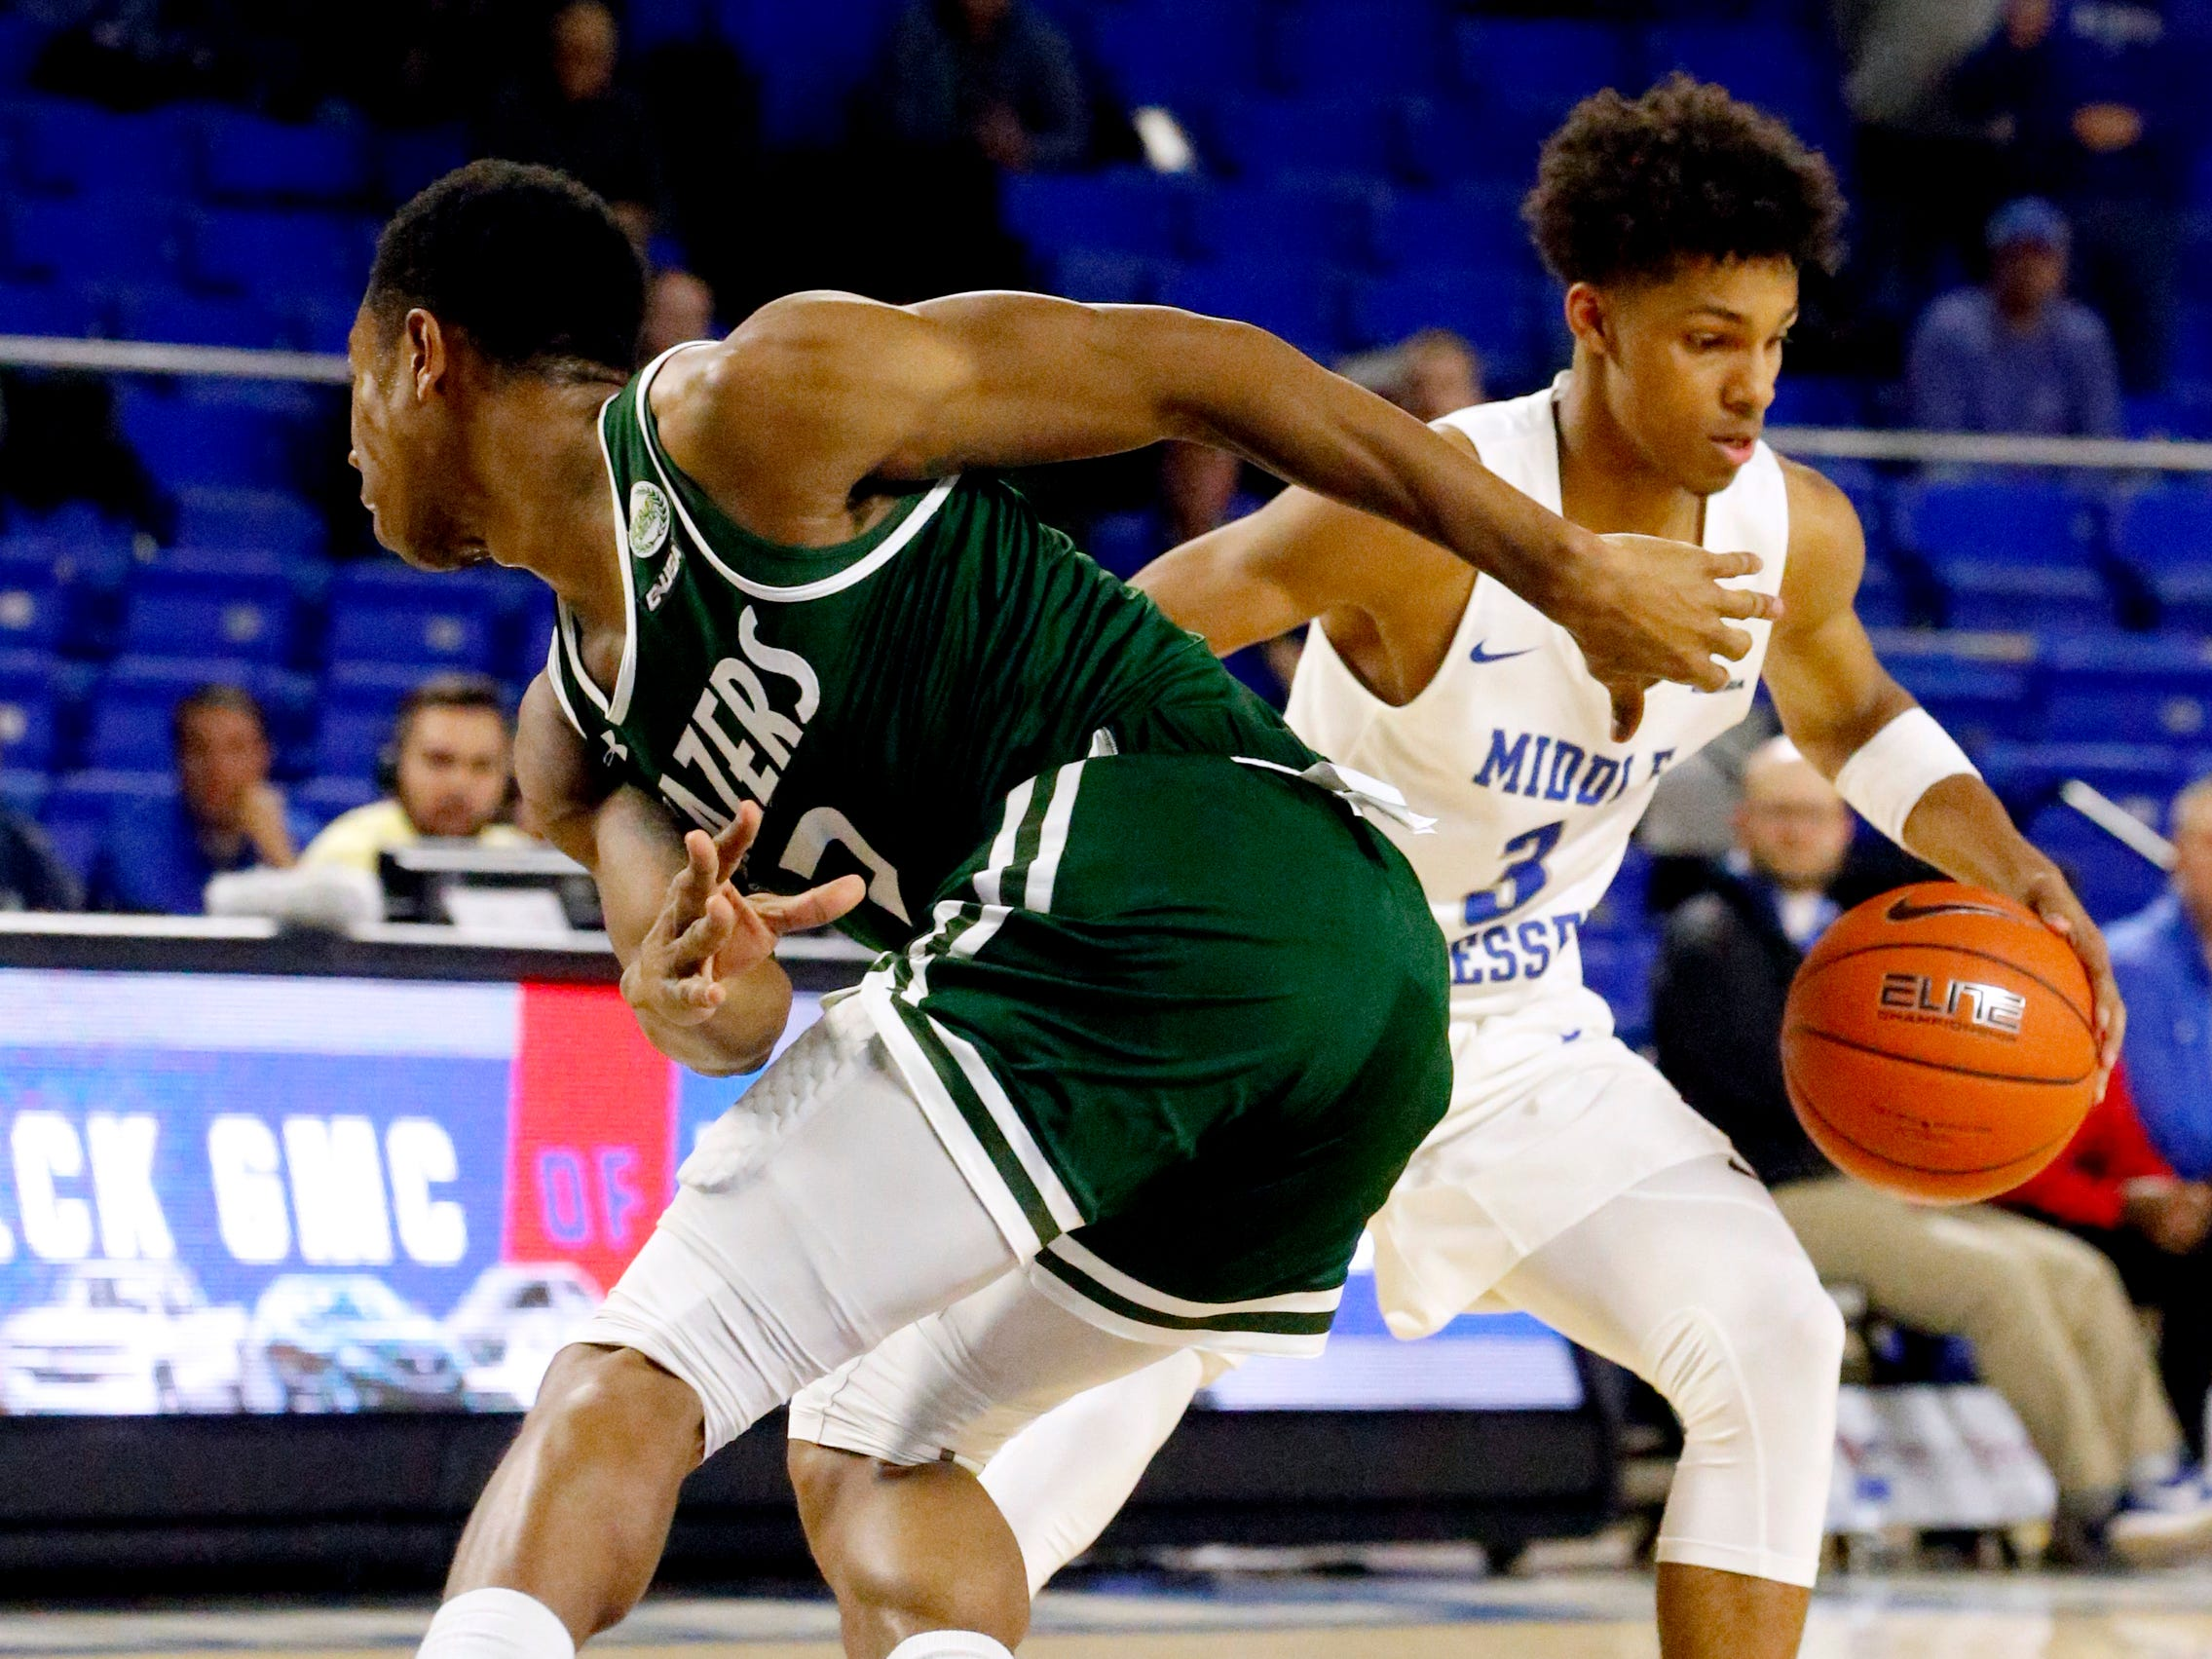 MTSU guard Donovan Sims (3) moves around UAB's guard Jeremiah Bell (2) as he gets in position to shoot a three point basket on Wednesday, Jan. 30, 2019.